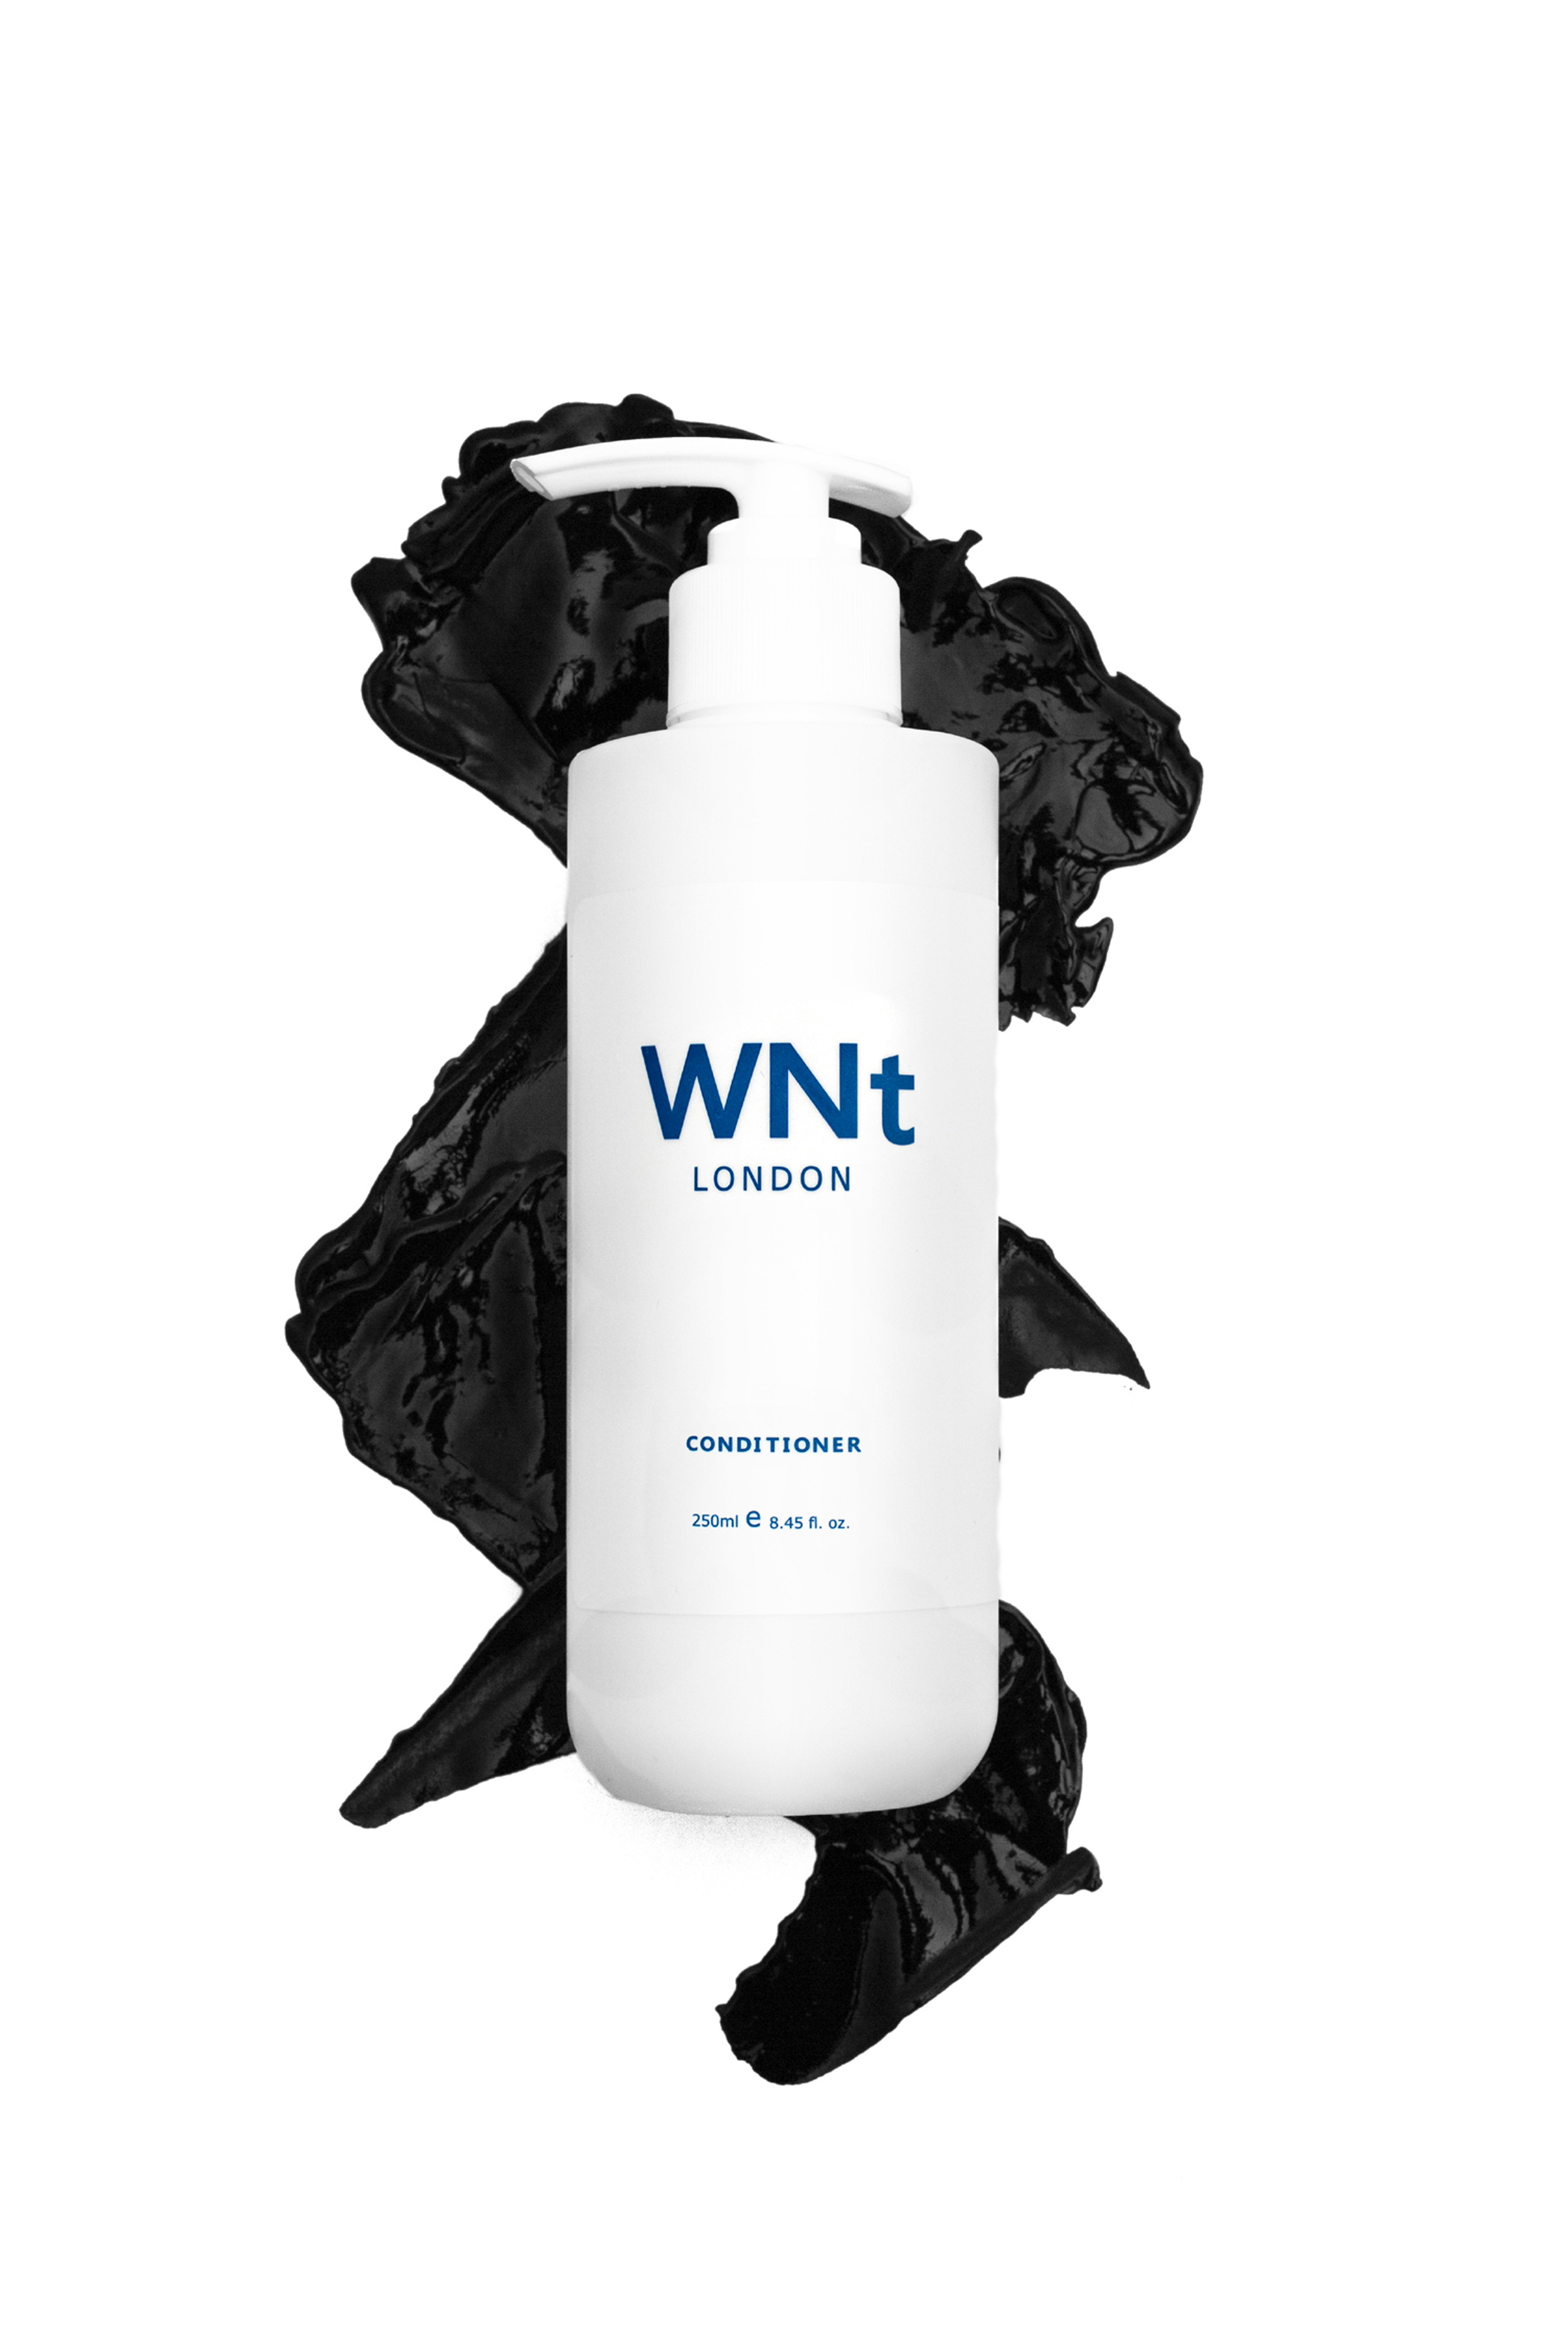 WTN Conditioner with Black Smear in Background.jpg